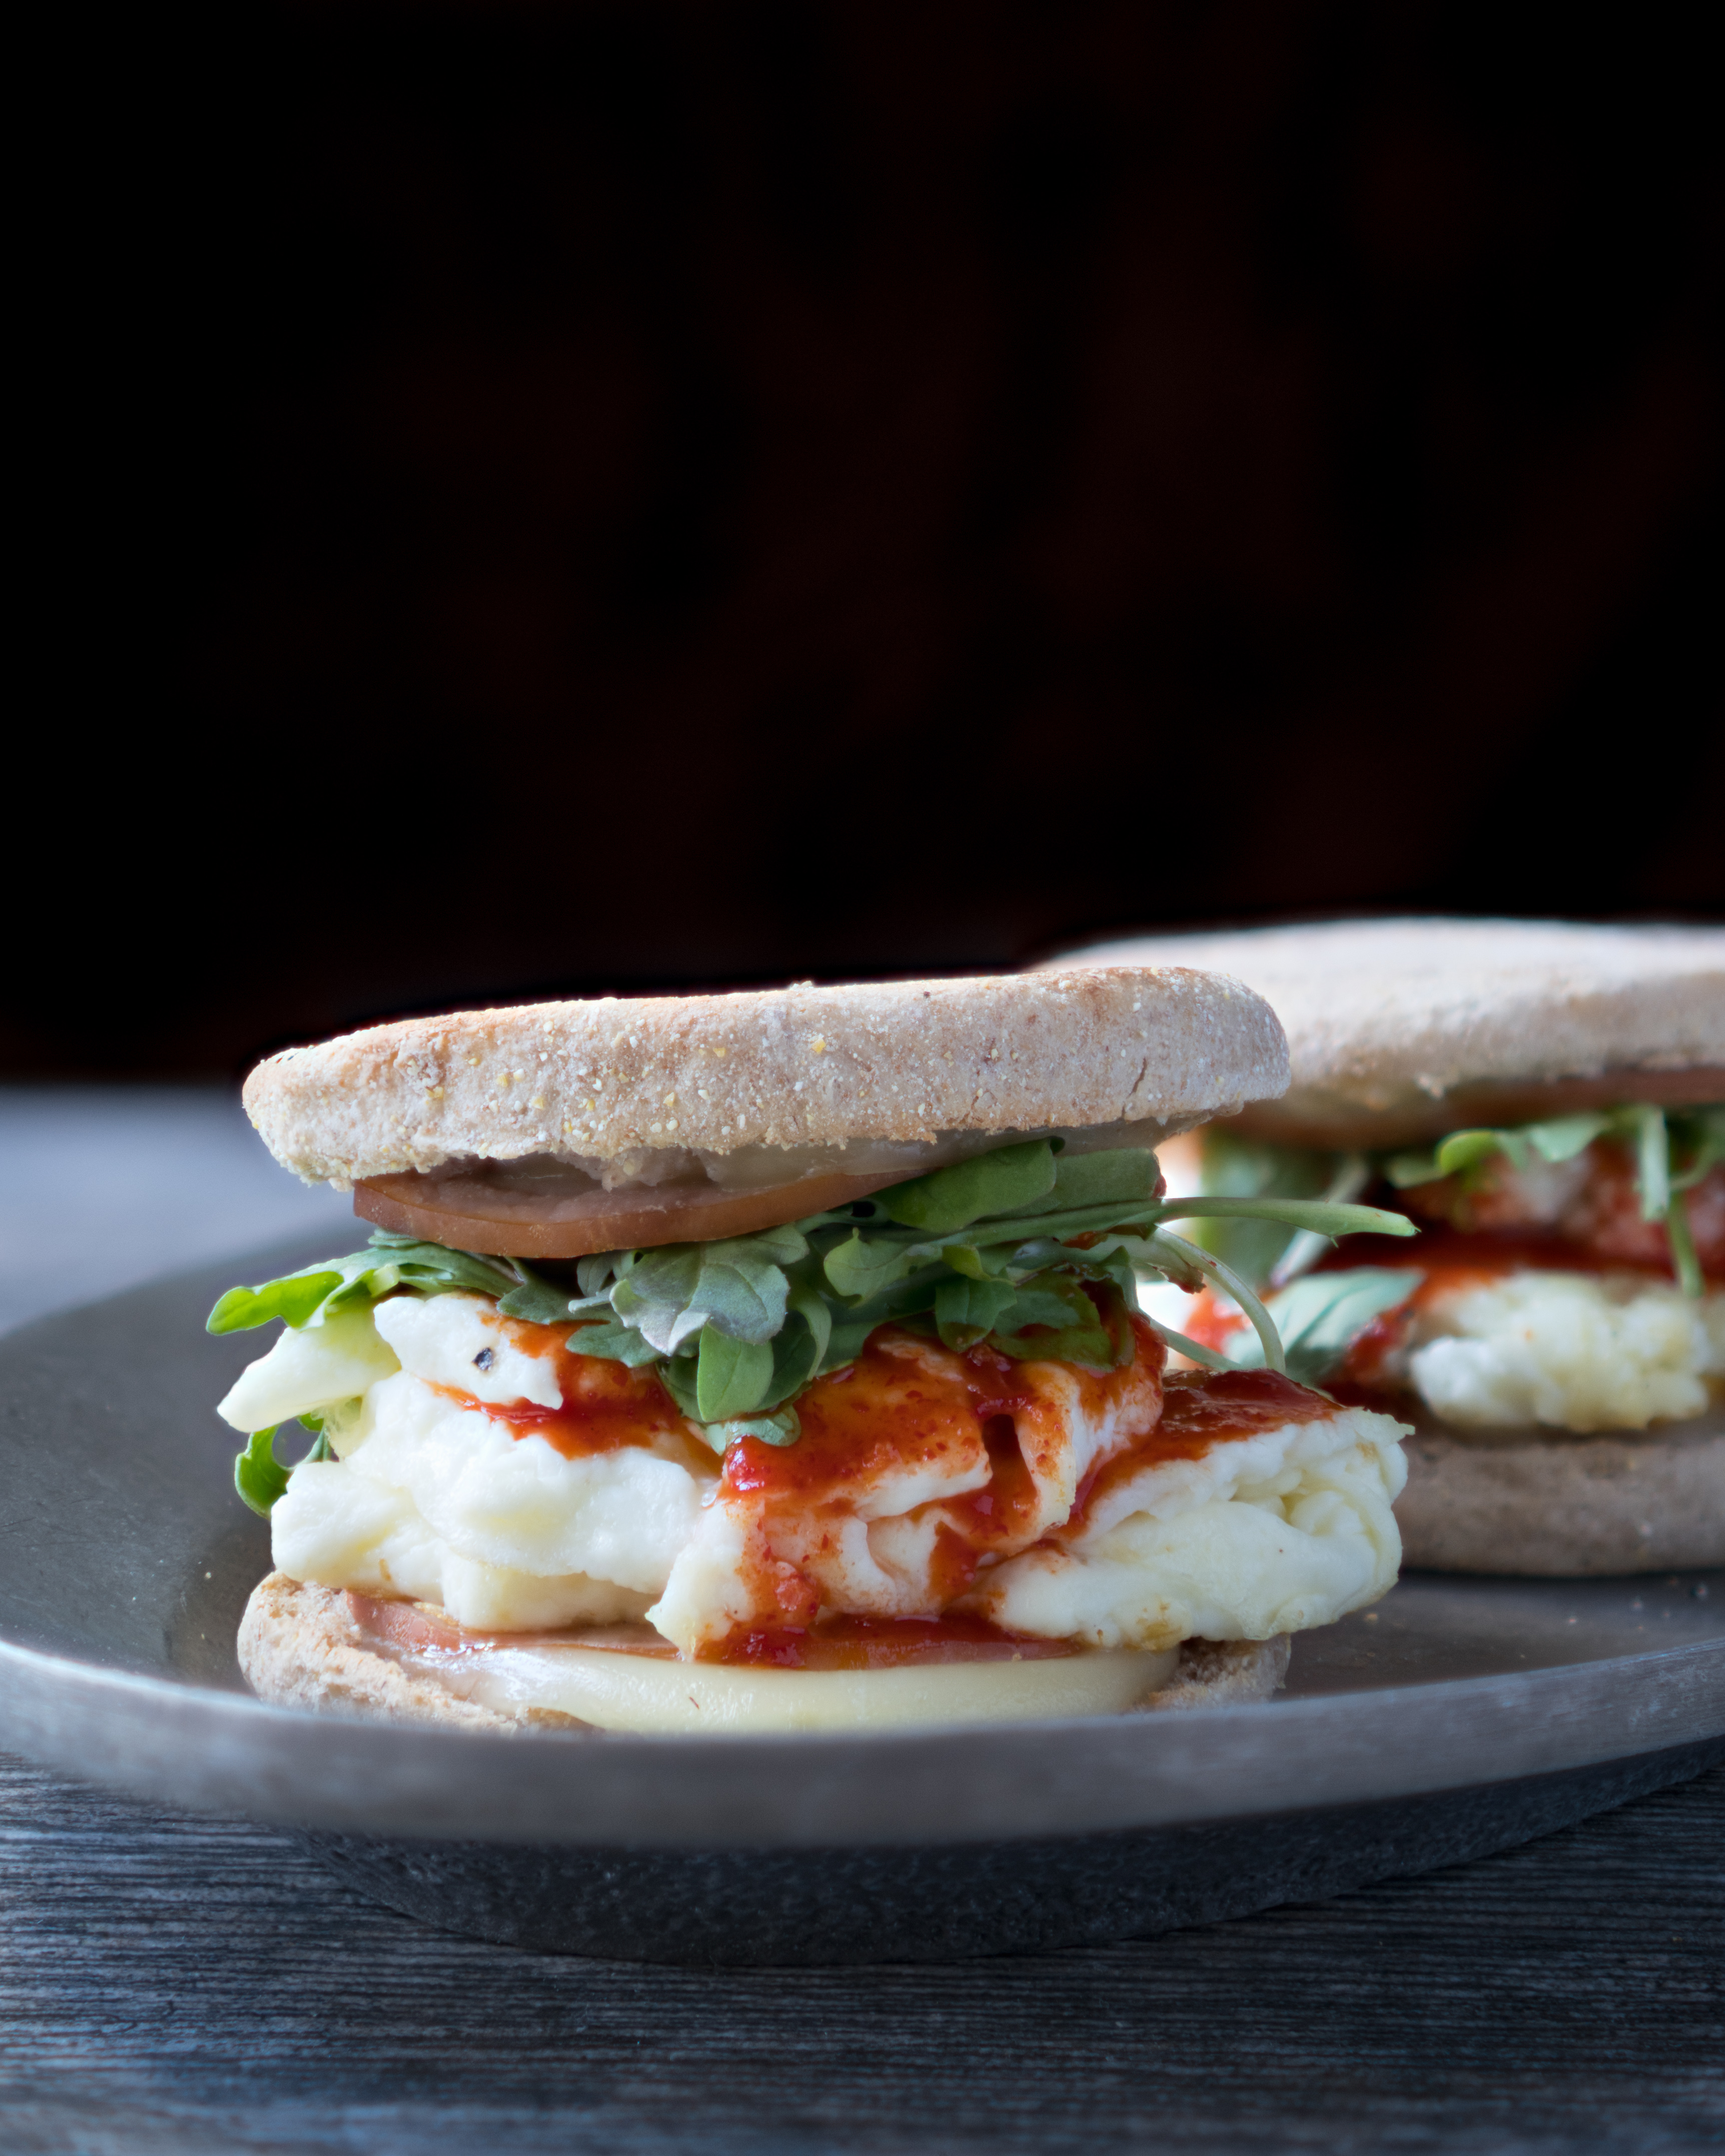 10 Minute Breakfast Sandwich – Healthy recipe for a 10 Minute Breakfast Sandwich! Using fluffy egg whites, melted cheese, lean Canadian bacon, a dash of hot sauce, and fresh arugula on a toasted whole wheat English muffin. High protein, low fat and macro-friendly ♥ | freeyourfork.com